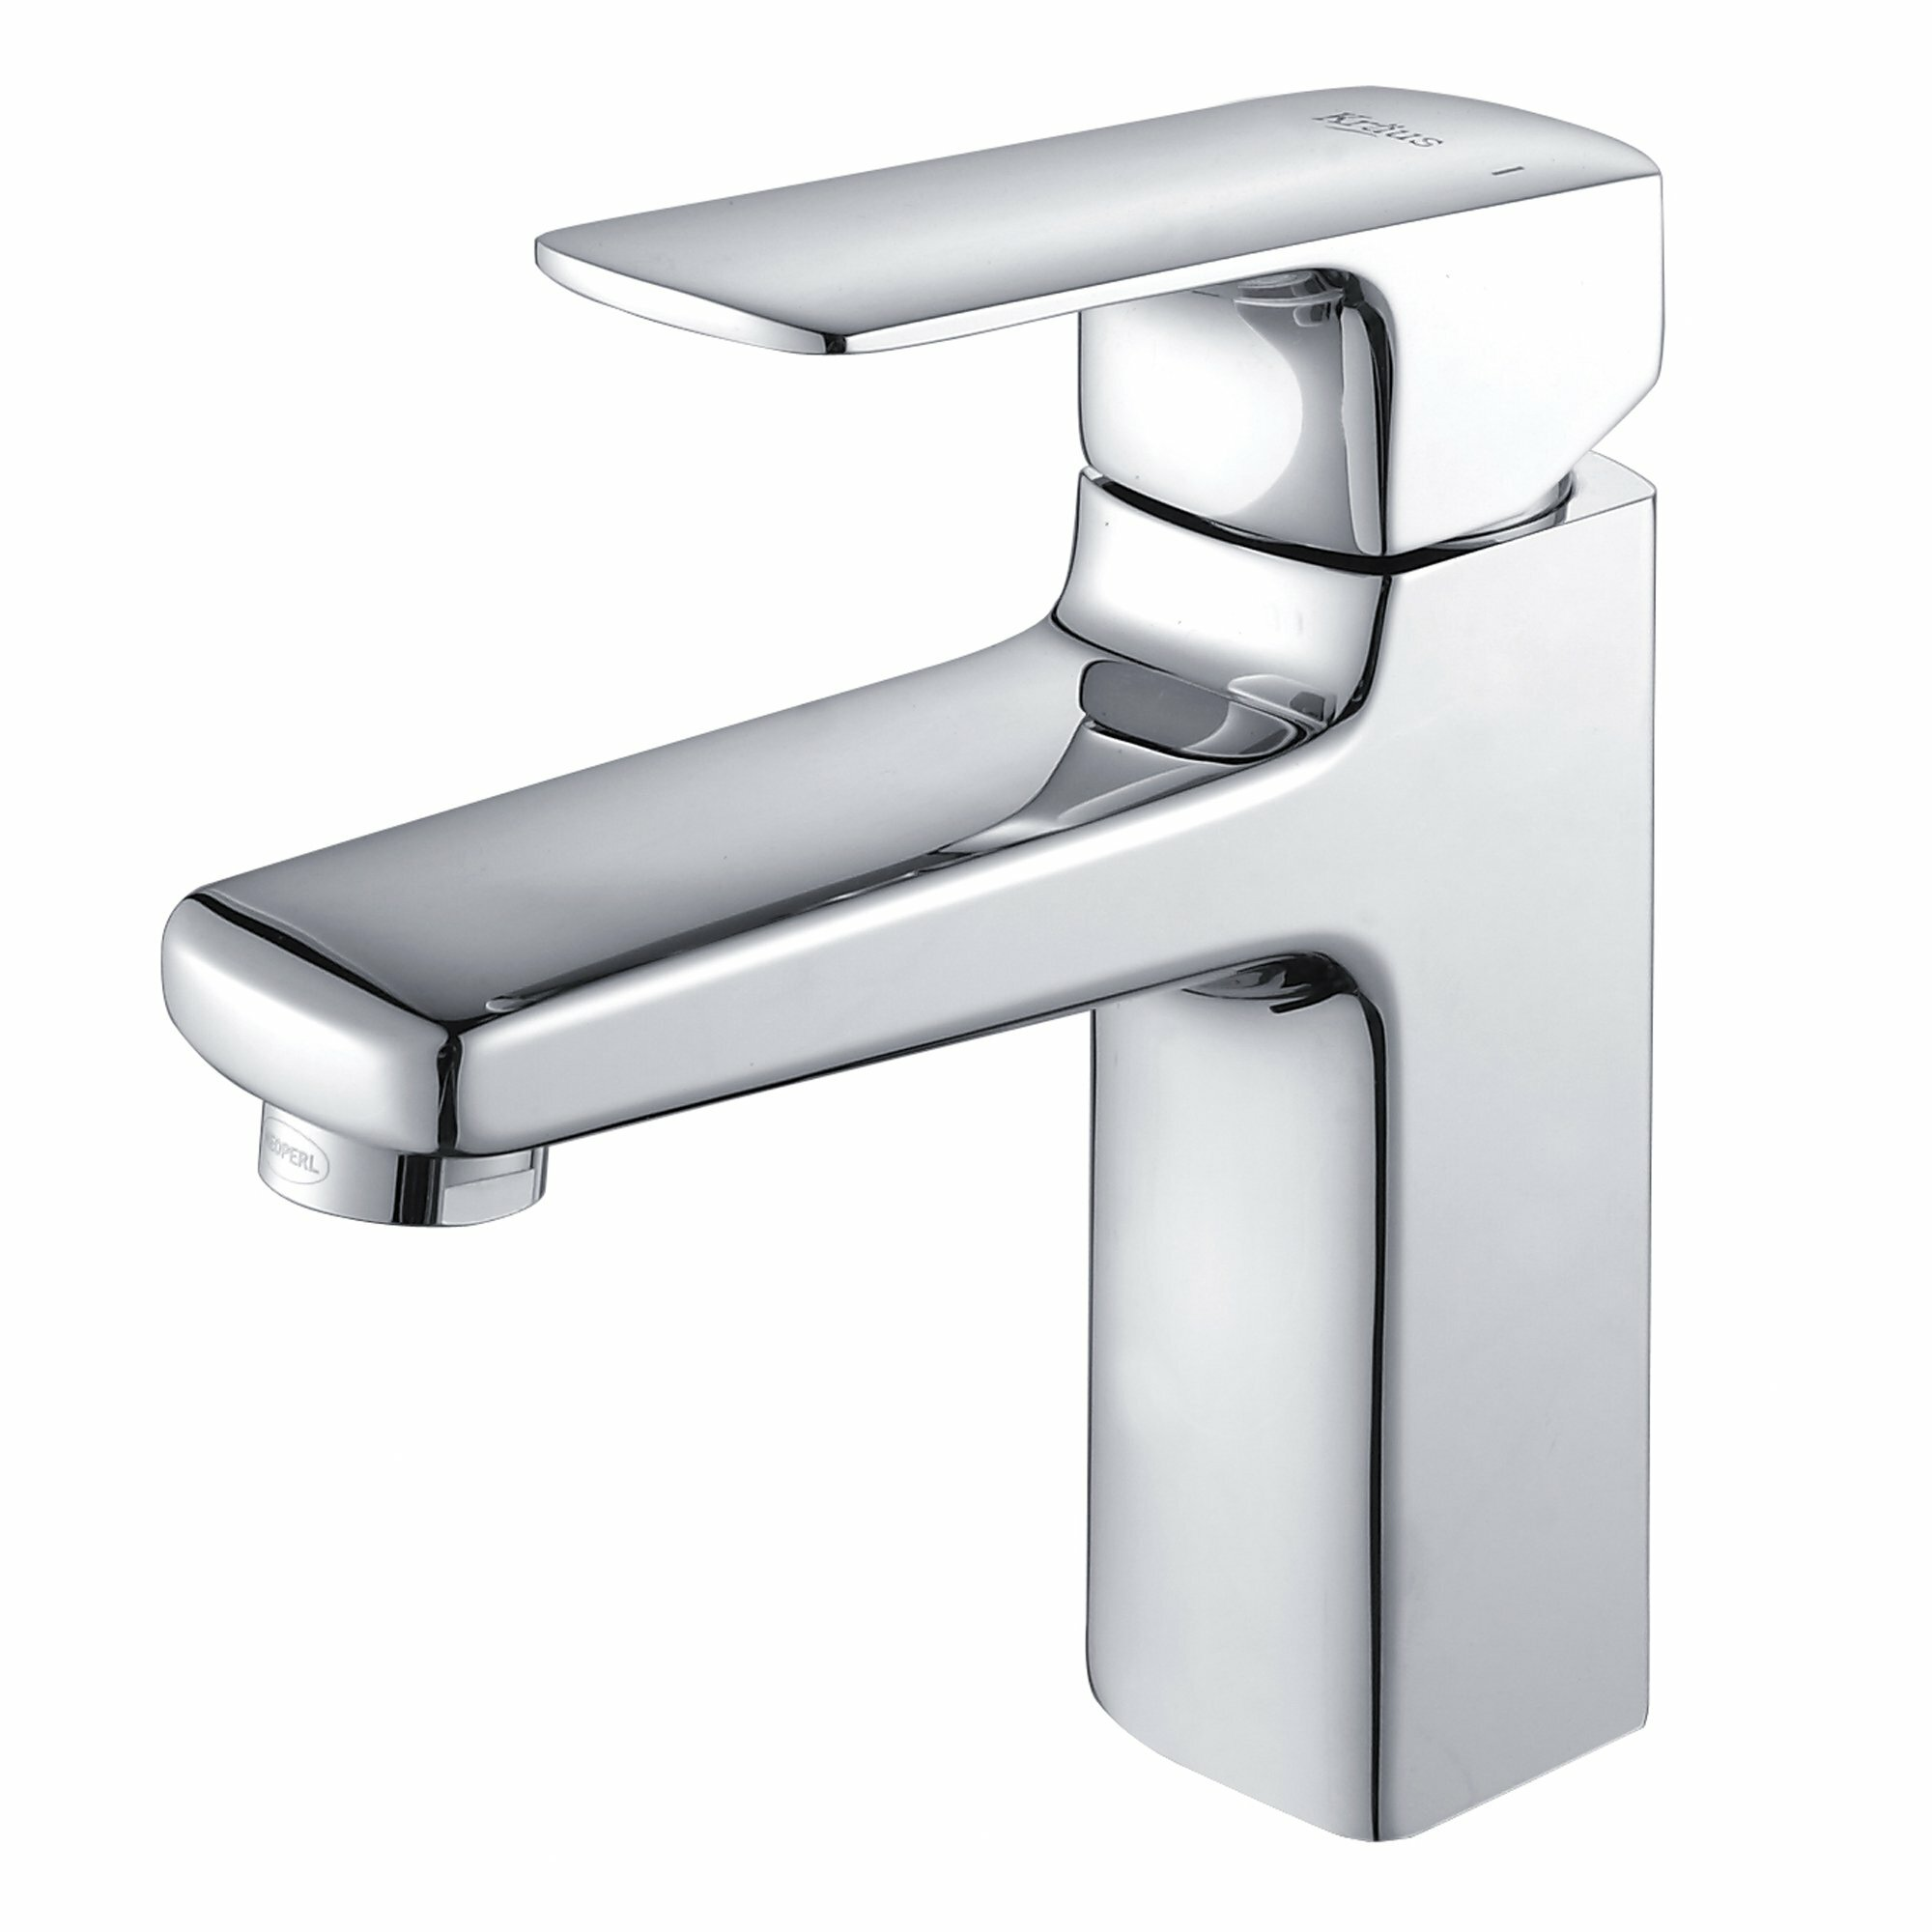 Kraus virtus single hole faucet with lever handle - Kraus shower faucets ...